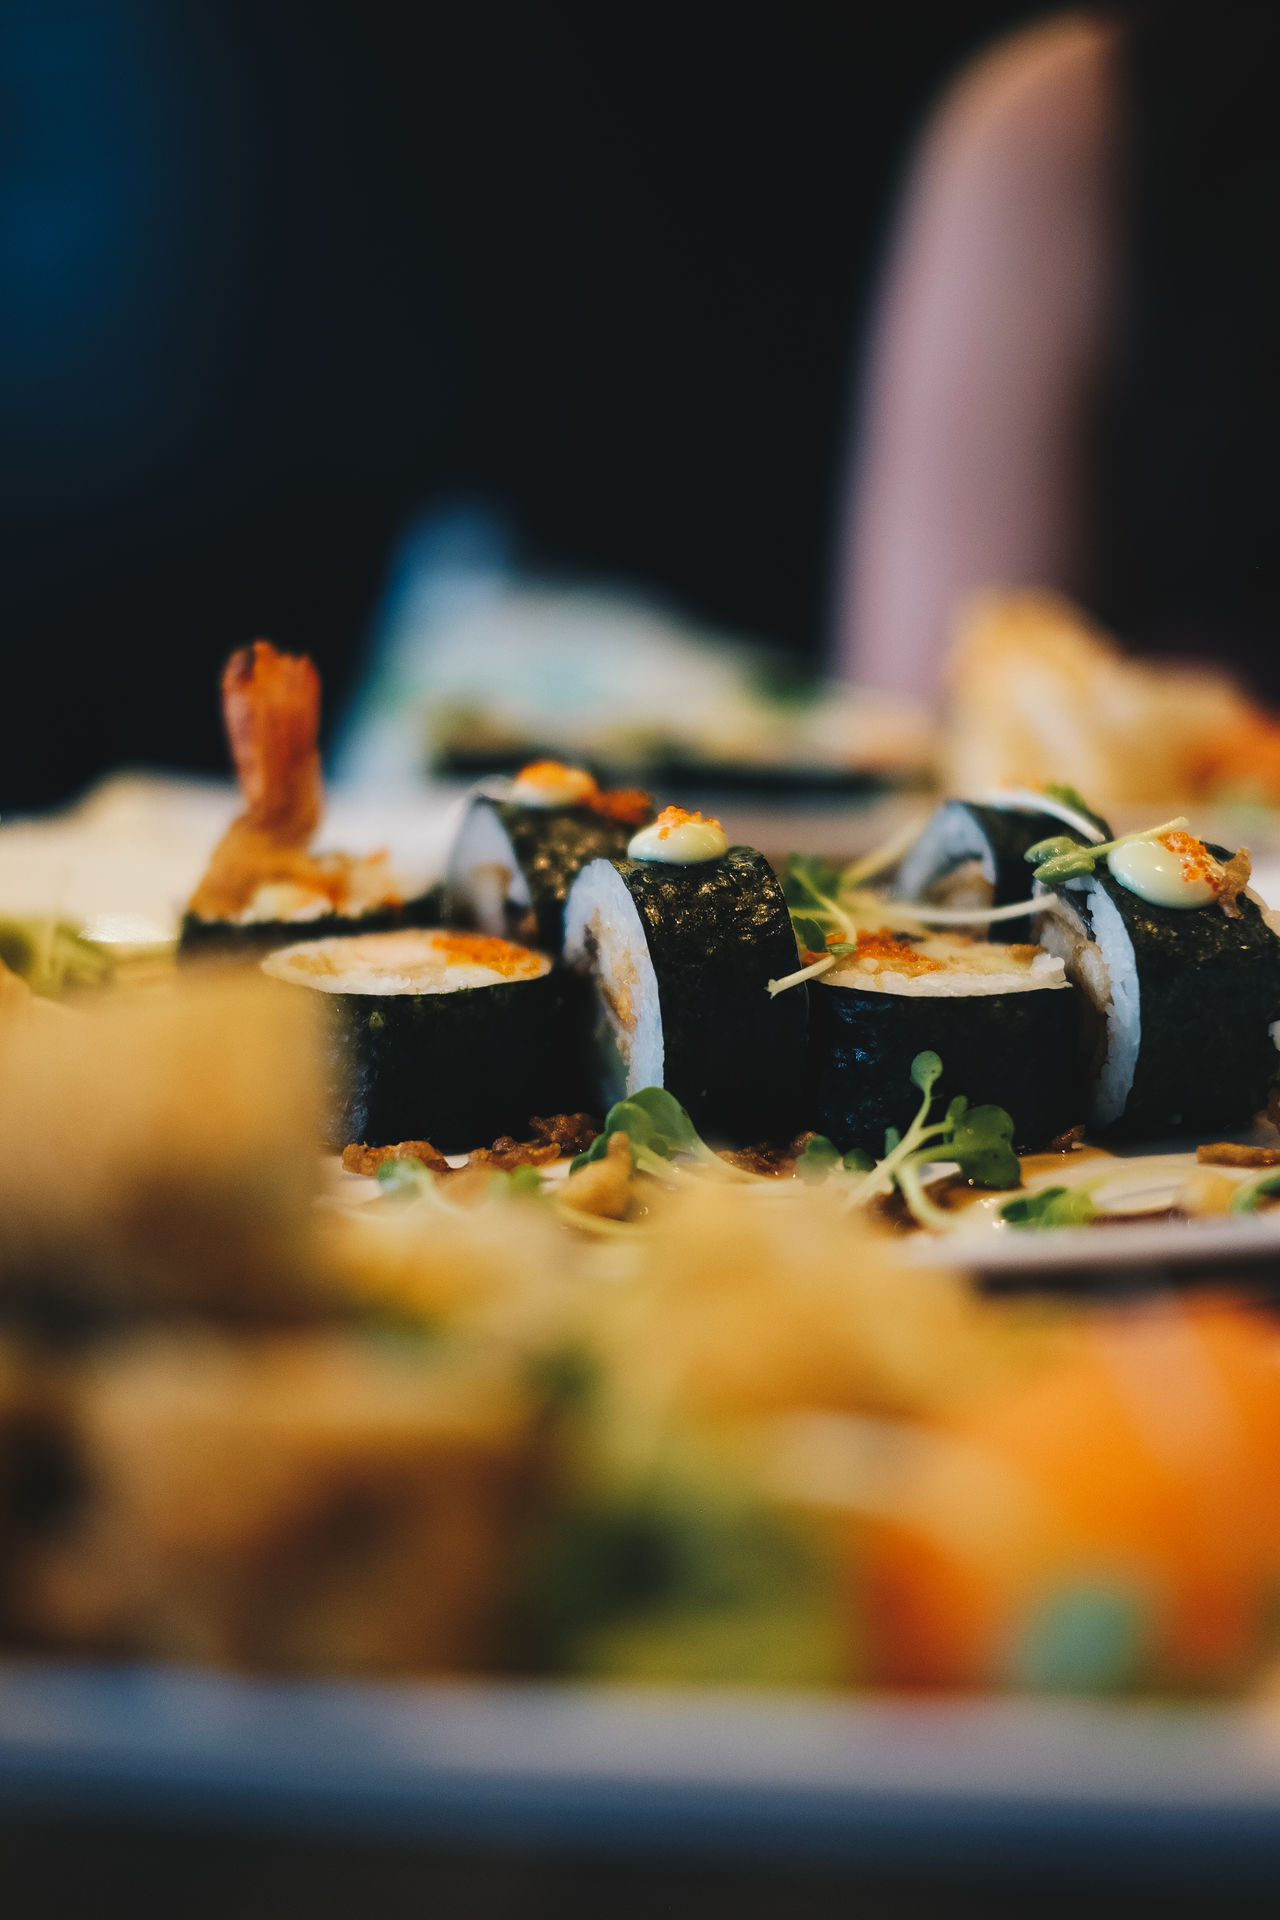 Close-up Day Differential Focus Food Food And Drink Freshness Healthy Eating Indoors  No People Ready-to-eat Selective Focus Sushi Vegetable